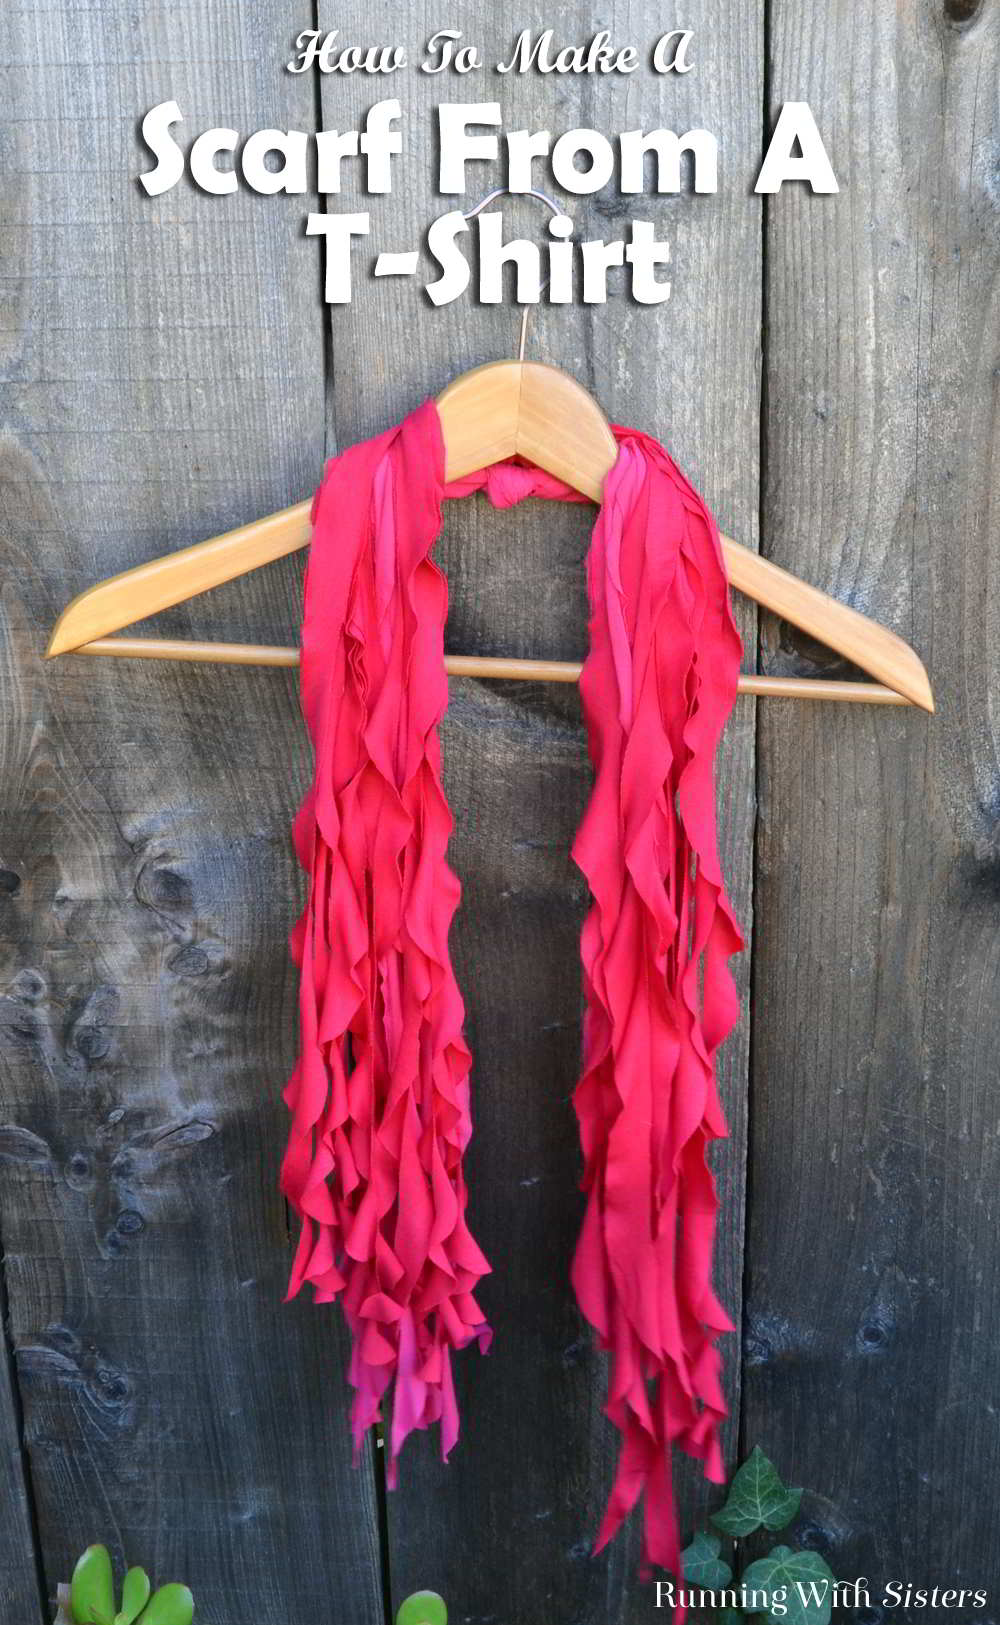 Here's a fun DIY that makes a great gift! Turn a t-shirt into a flowy scarf! All you need is a t-shirt and scissors. It's super easy and we'll show you how!